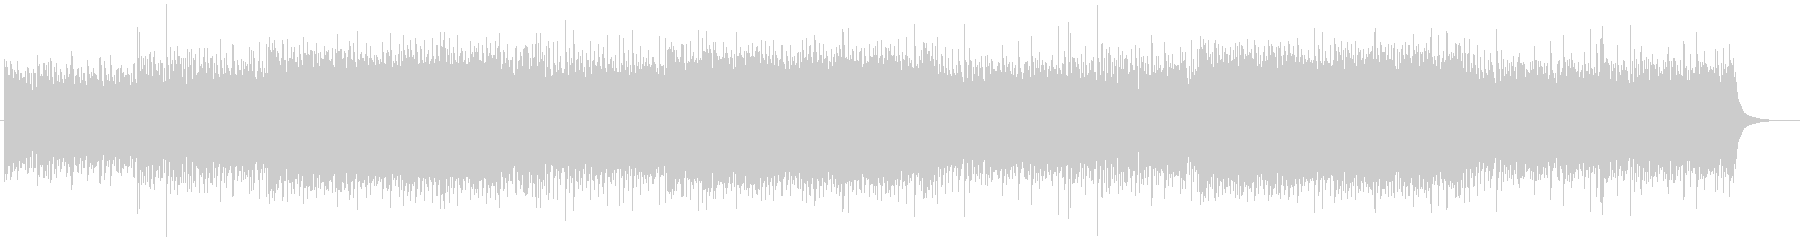 Refreshing, positive and transparent corporate background music's unreproduced waveform